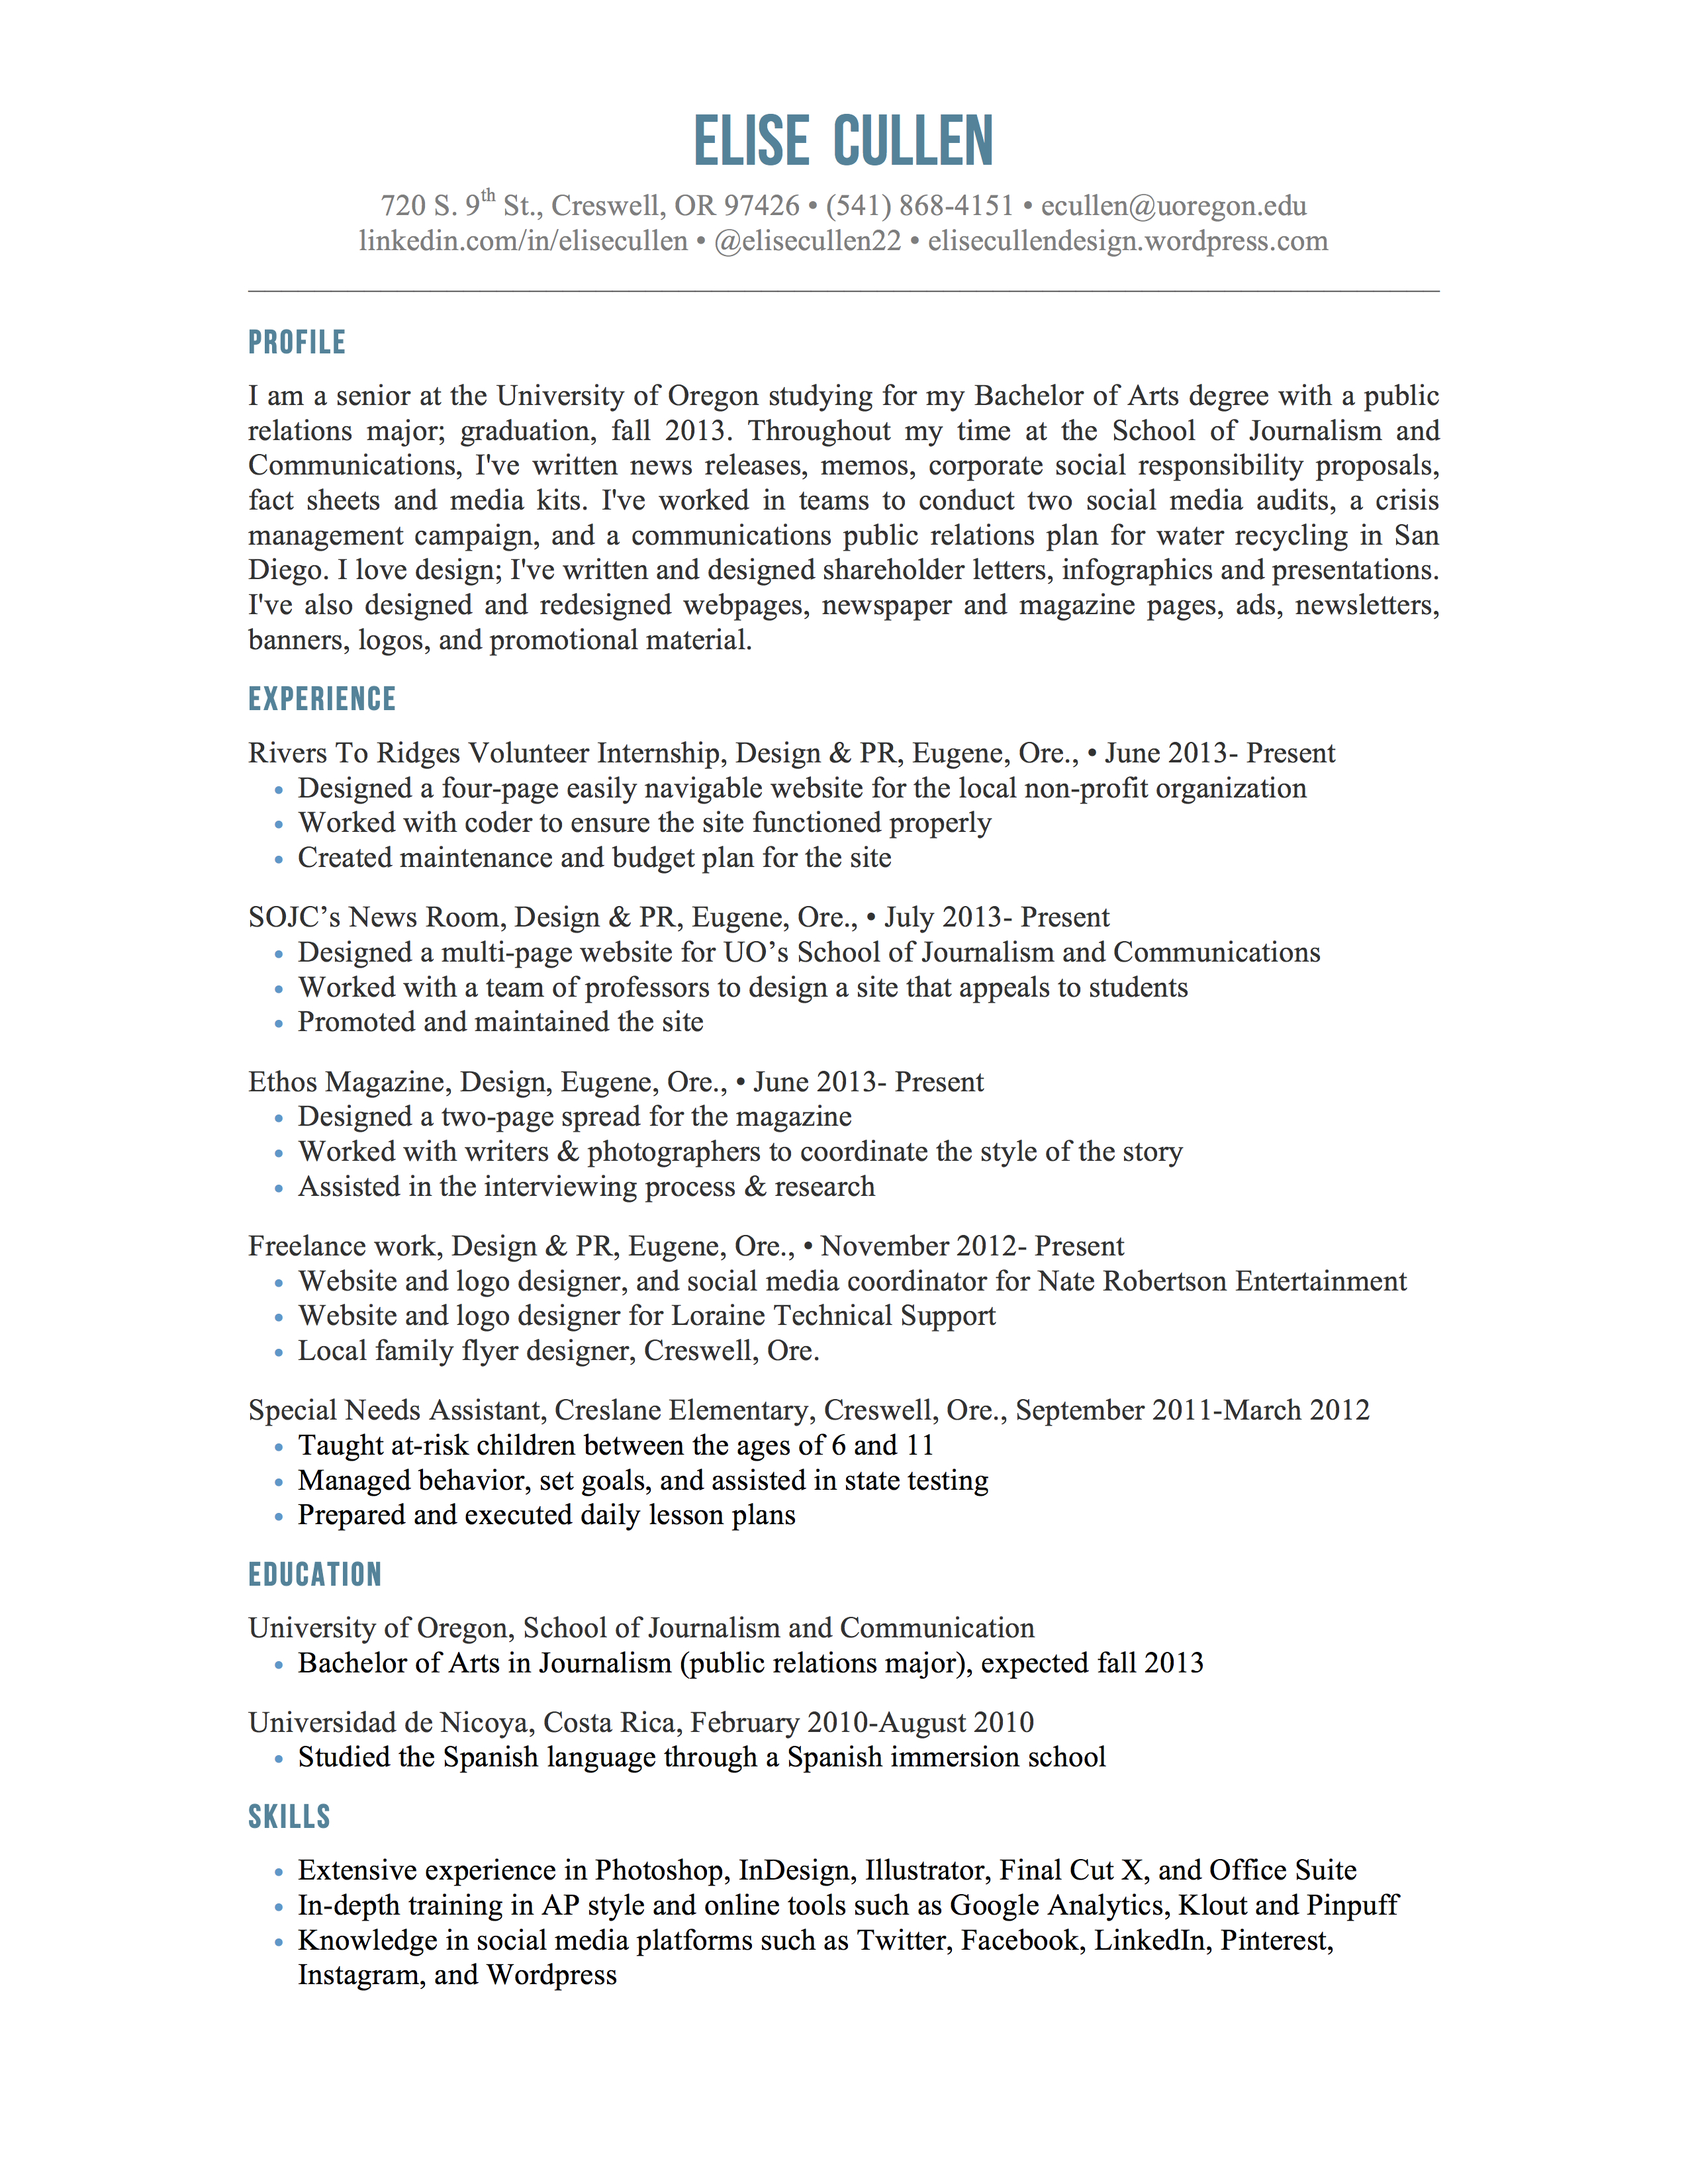 Catherine Abernathy Digital Resume And Portfolio Cover Letter Apa Style  Cover Letters Template Apa Format Page